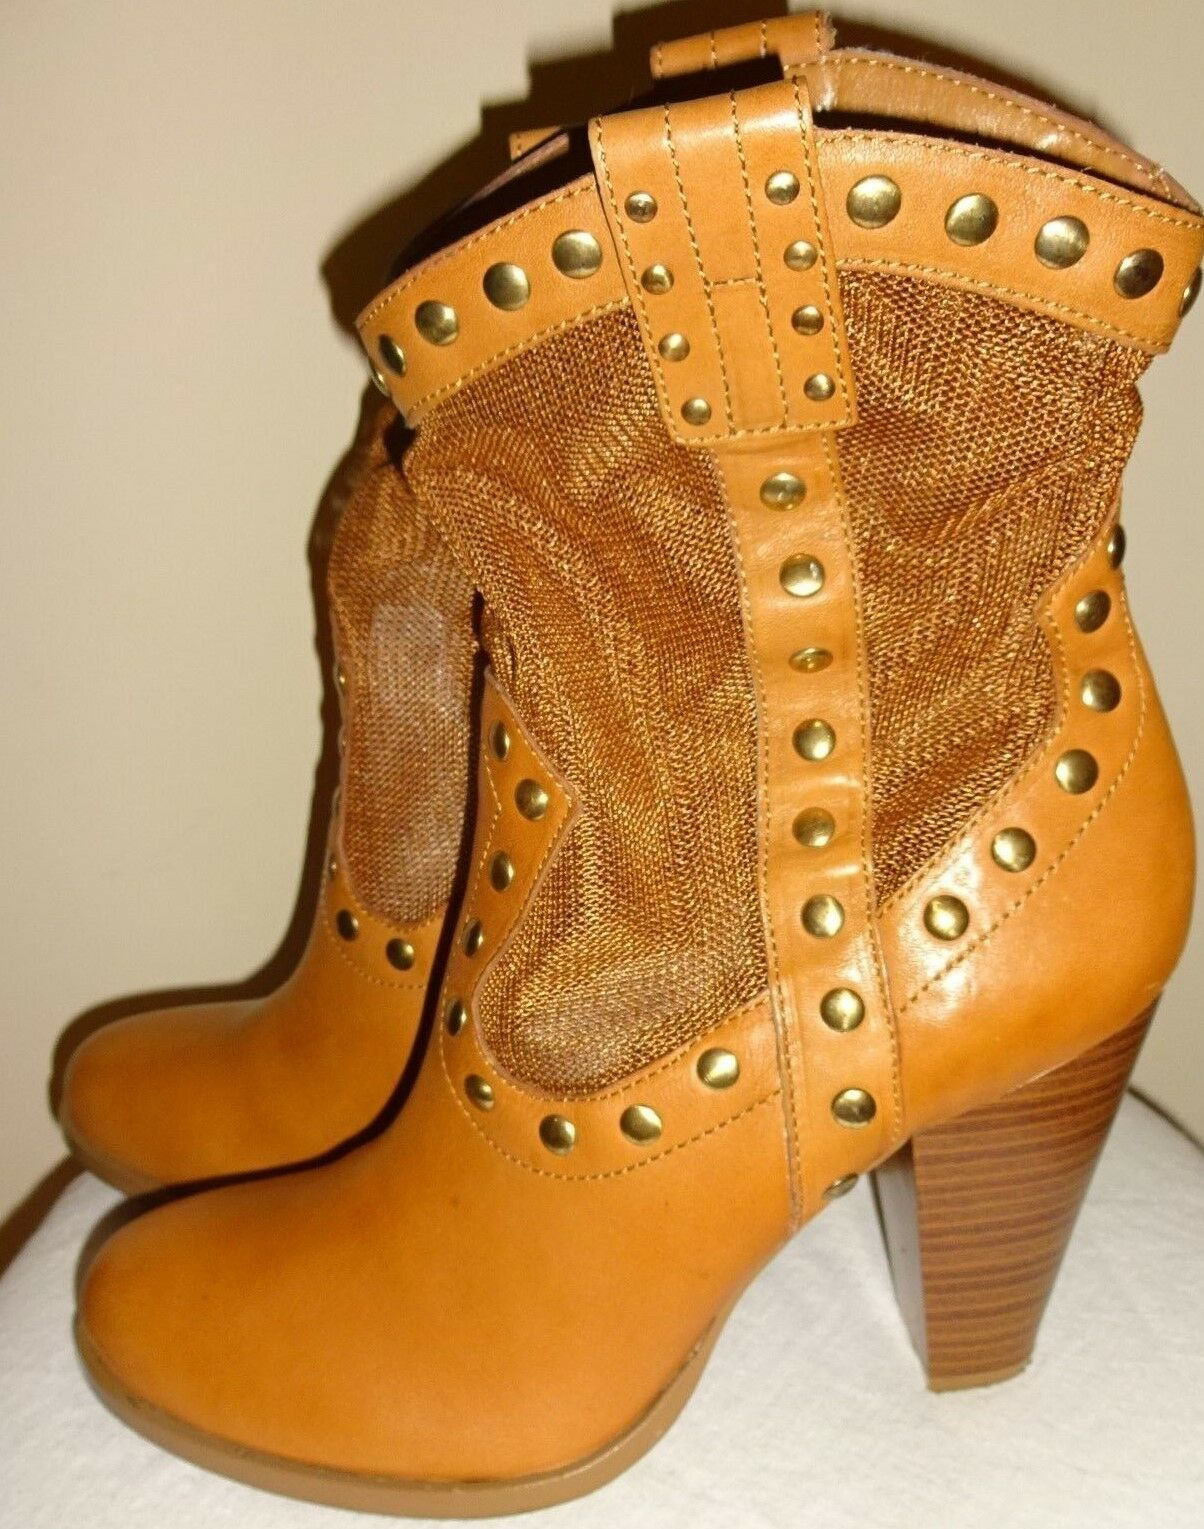 BCBG  Winston  Brown Leather Mesh Studs 4  Heel Sexy Ankle Boots shoes Size 8.5